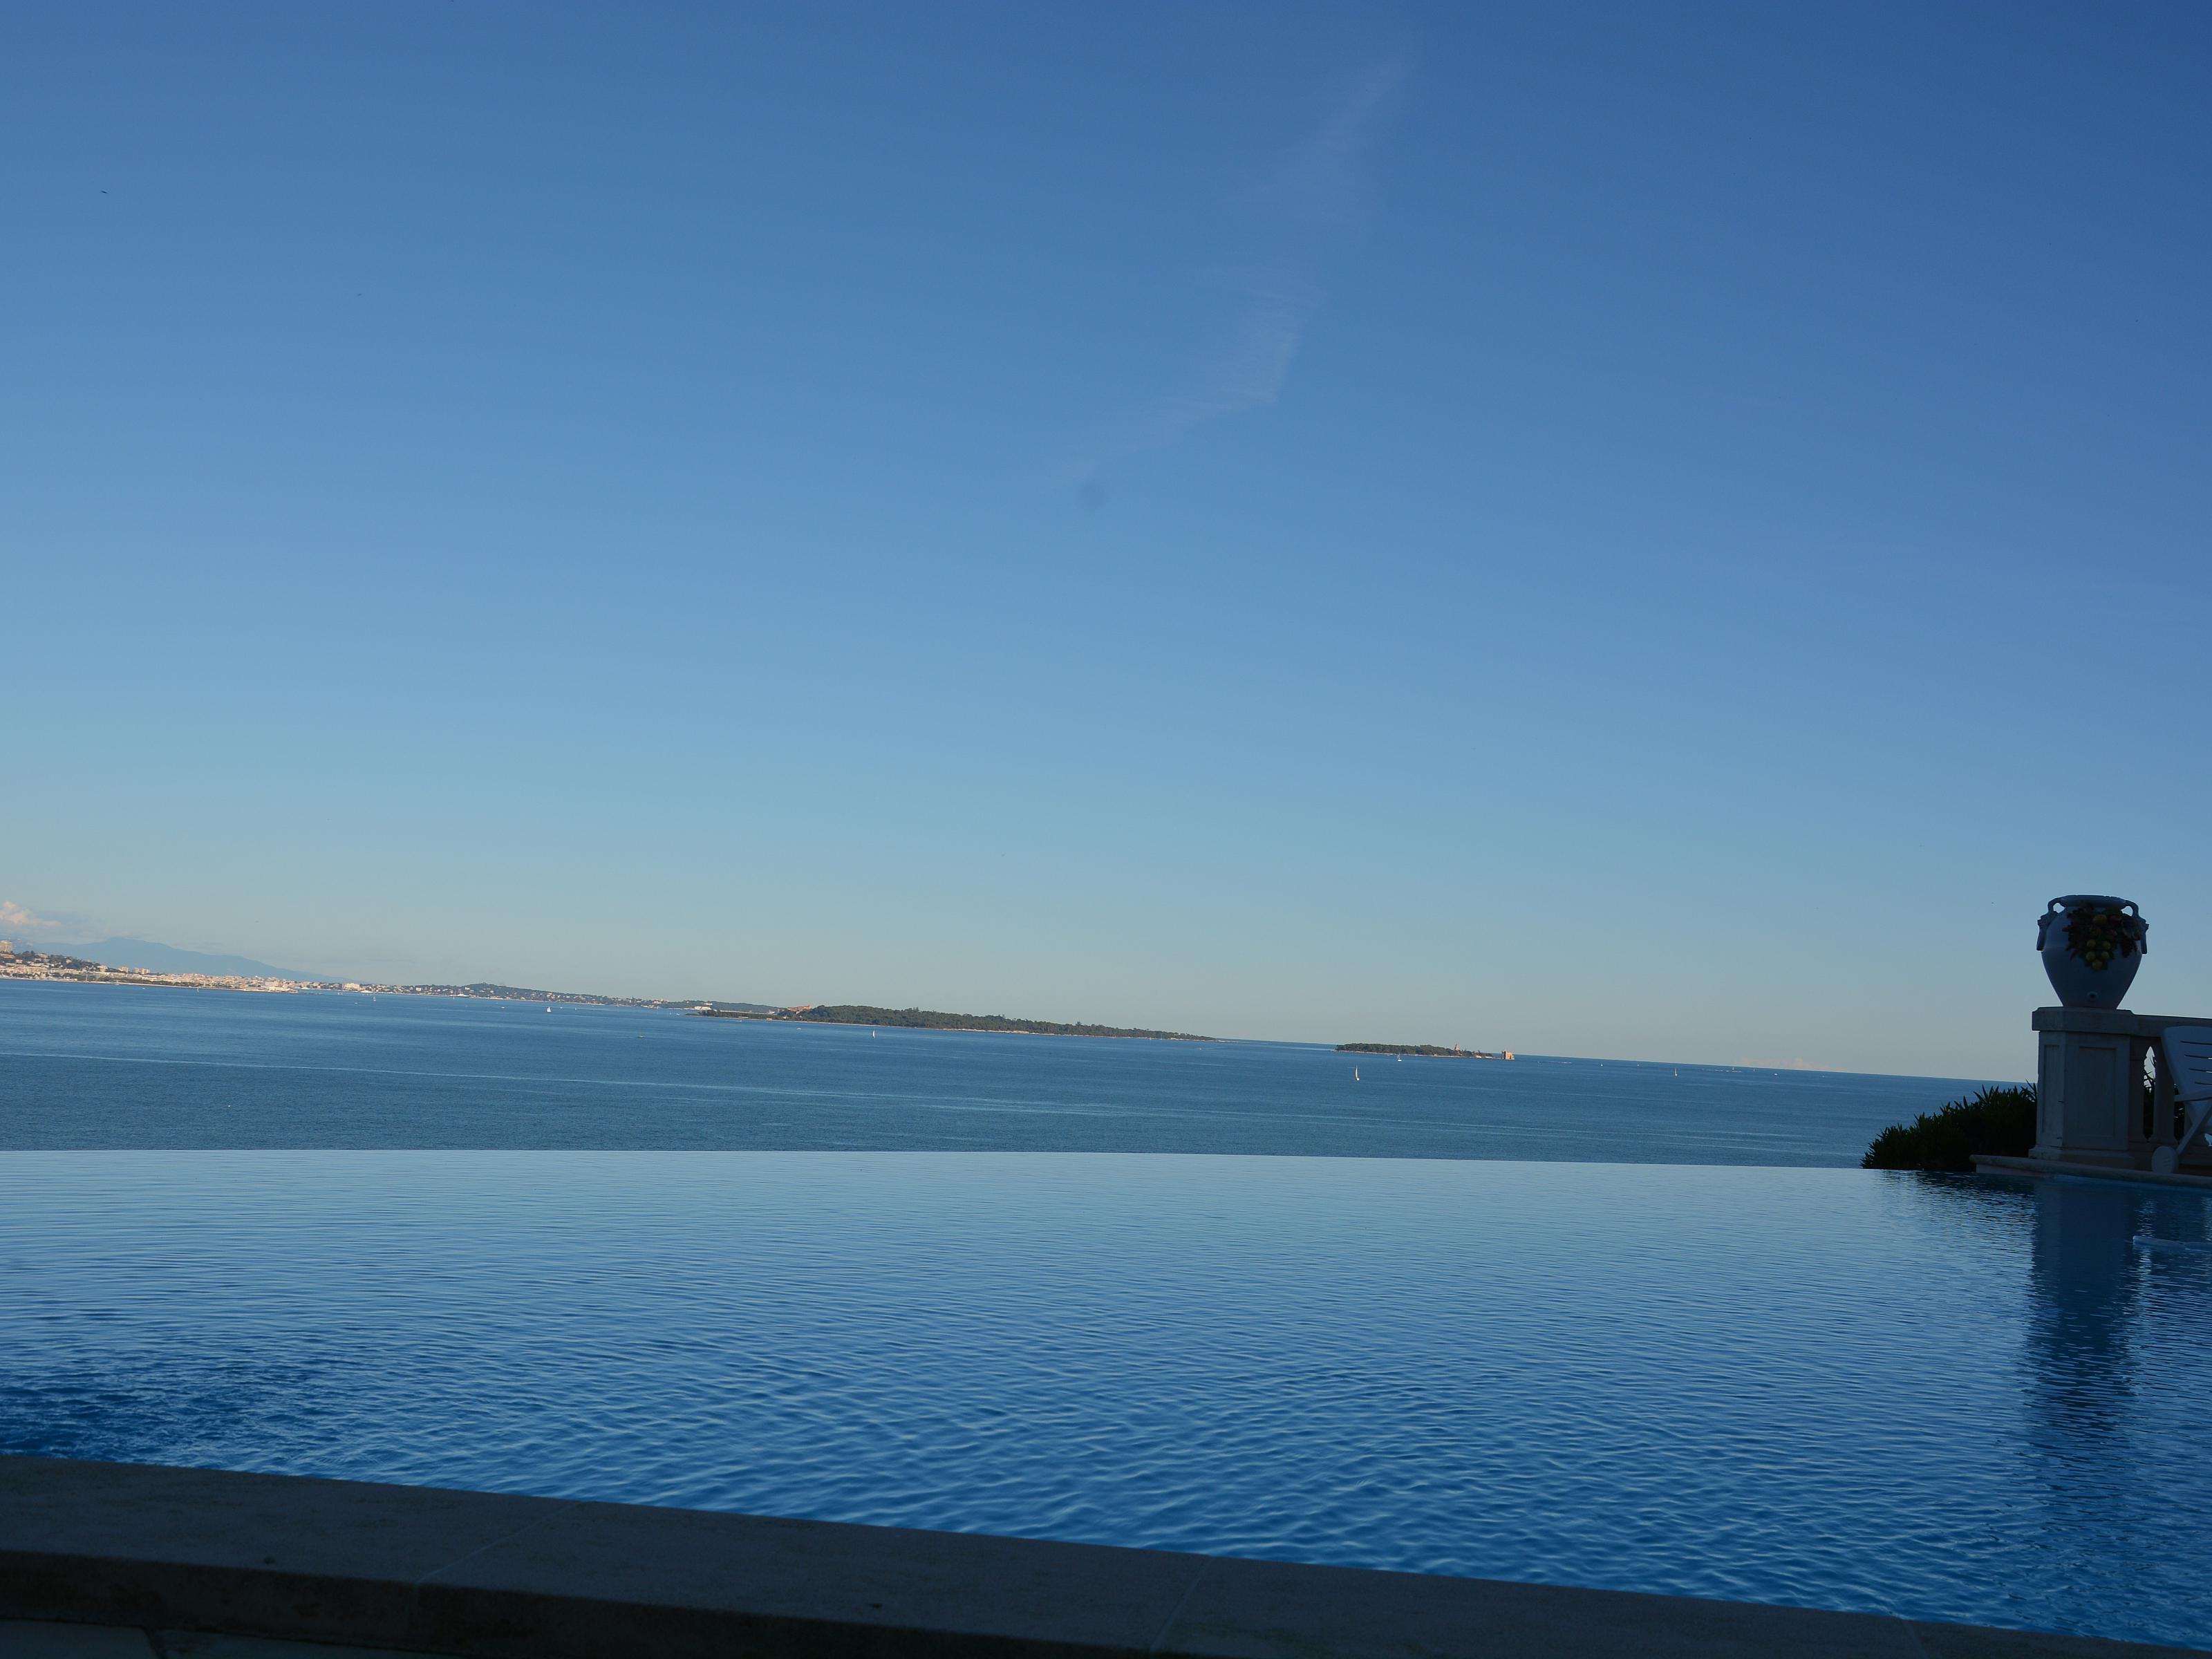 Single Family Home for Sale at Large Waterfront Estate on the Bay of Cannes Théoule sur Mer Theoule Sur Mer, Provence-Alpes-Cote D'Azur 06590 France